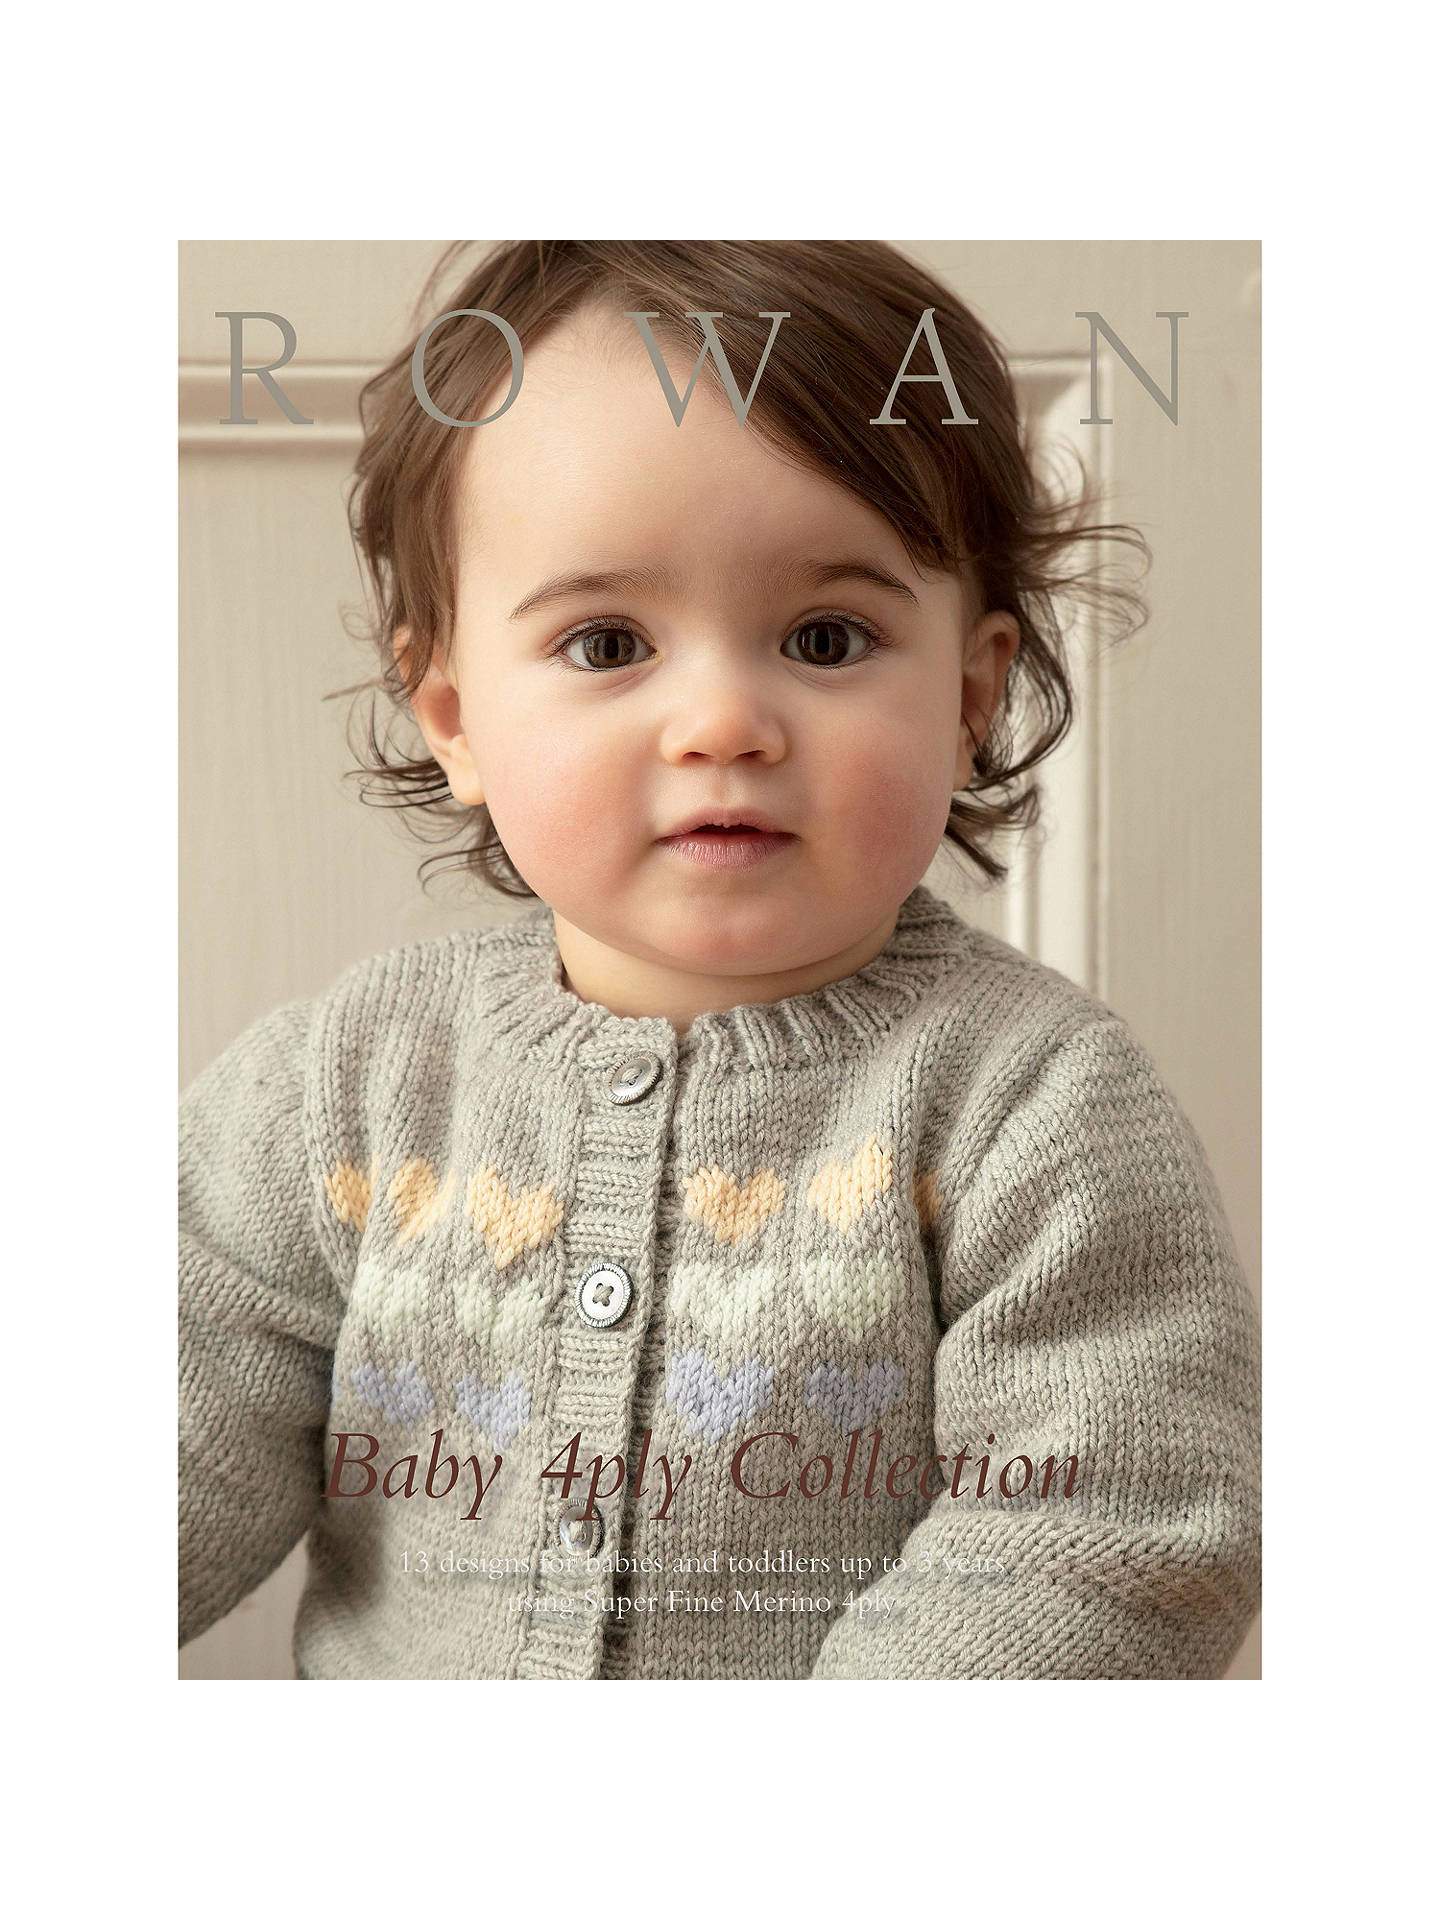 062af8e5a529 Rowan Baby 4 Ply Collection Knitting Pattern Book ZB186 at John ...